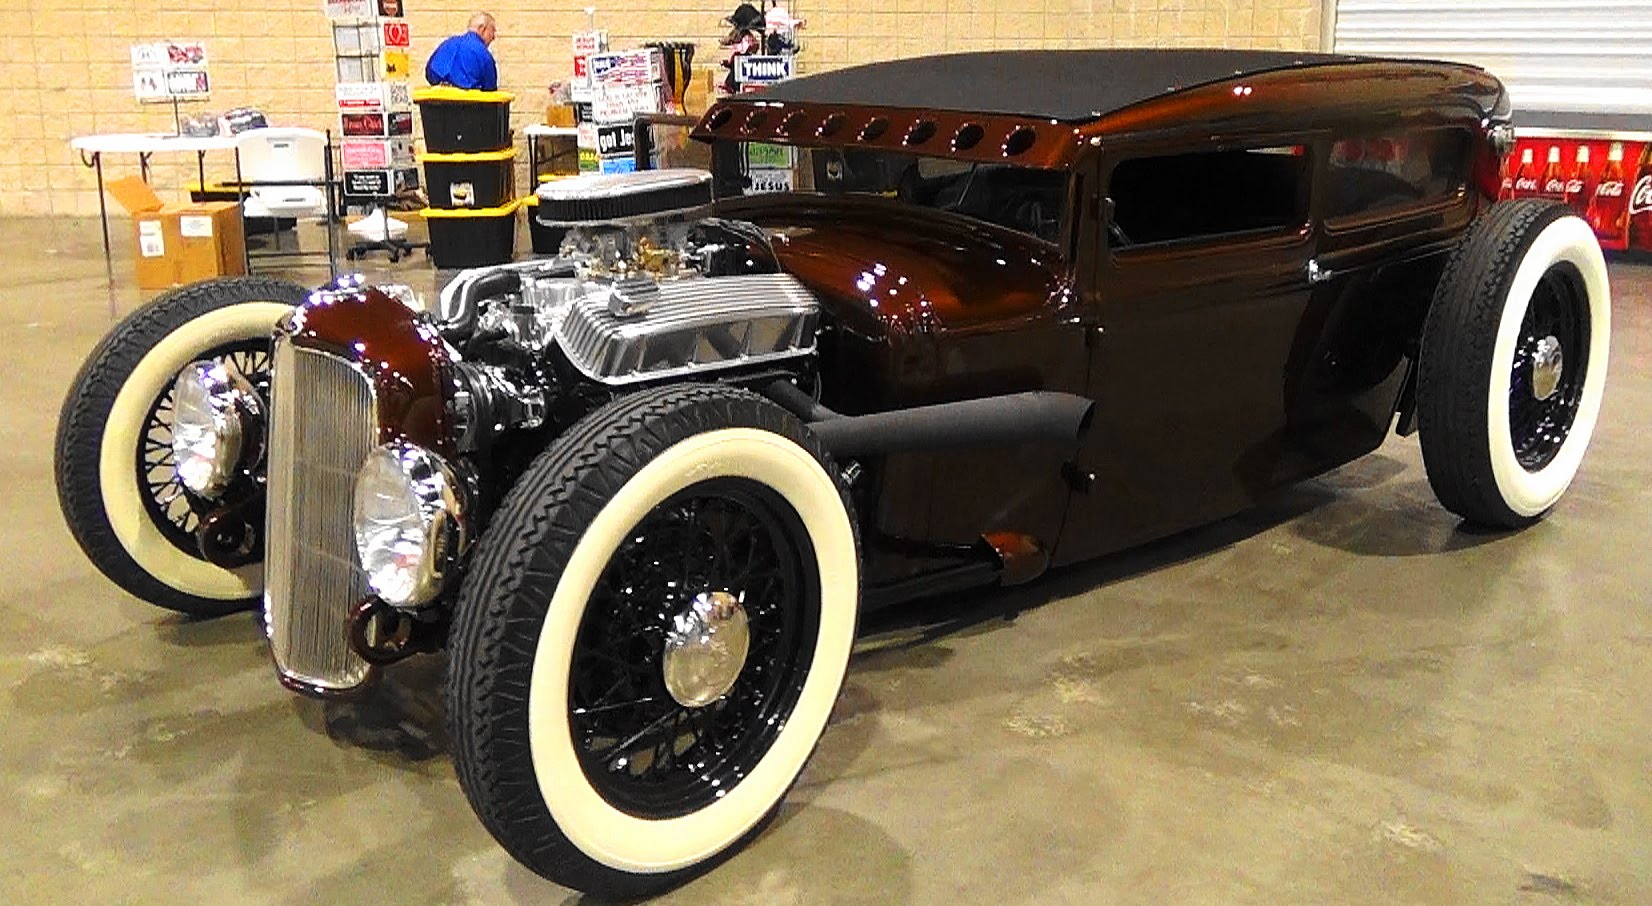 This 1930 Ford Model A Sedan Hot Rod Is One Fine Looking Throwback ...